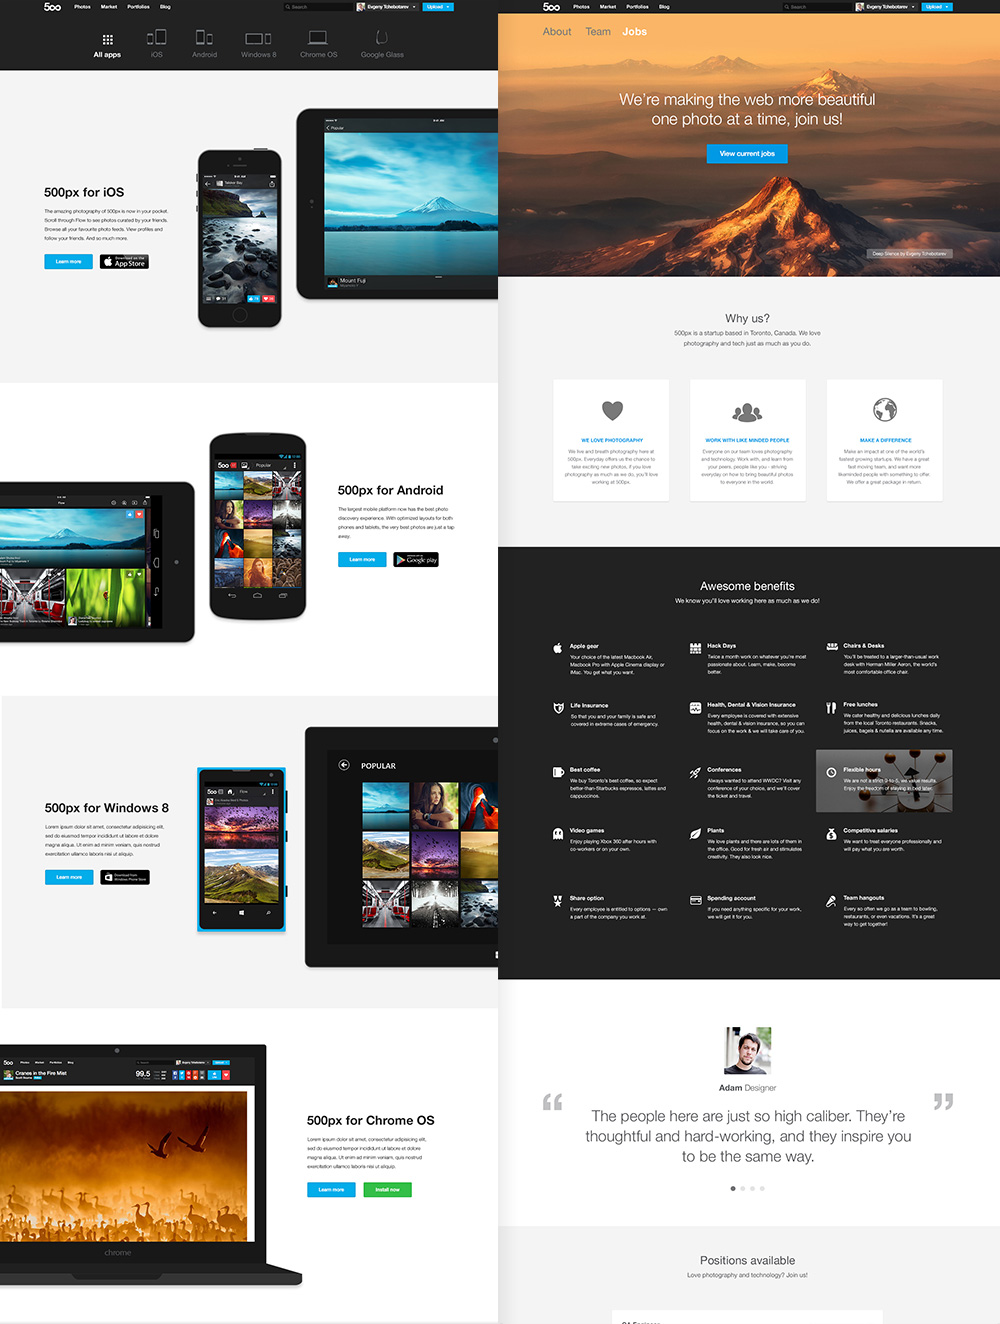 500px jobs page